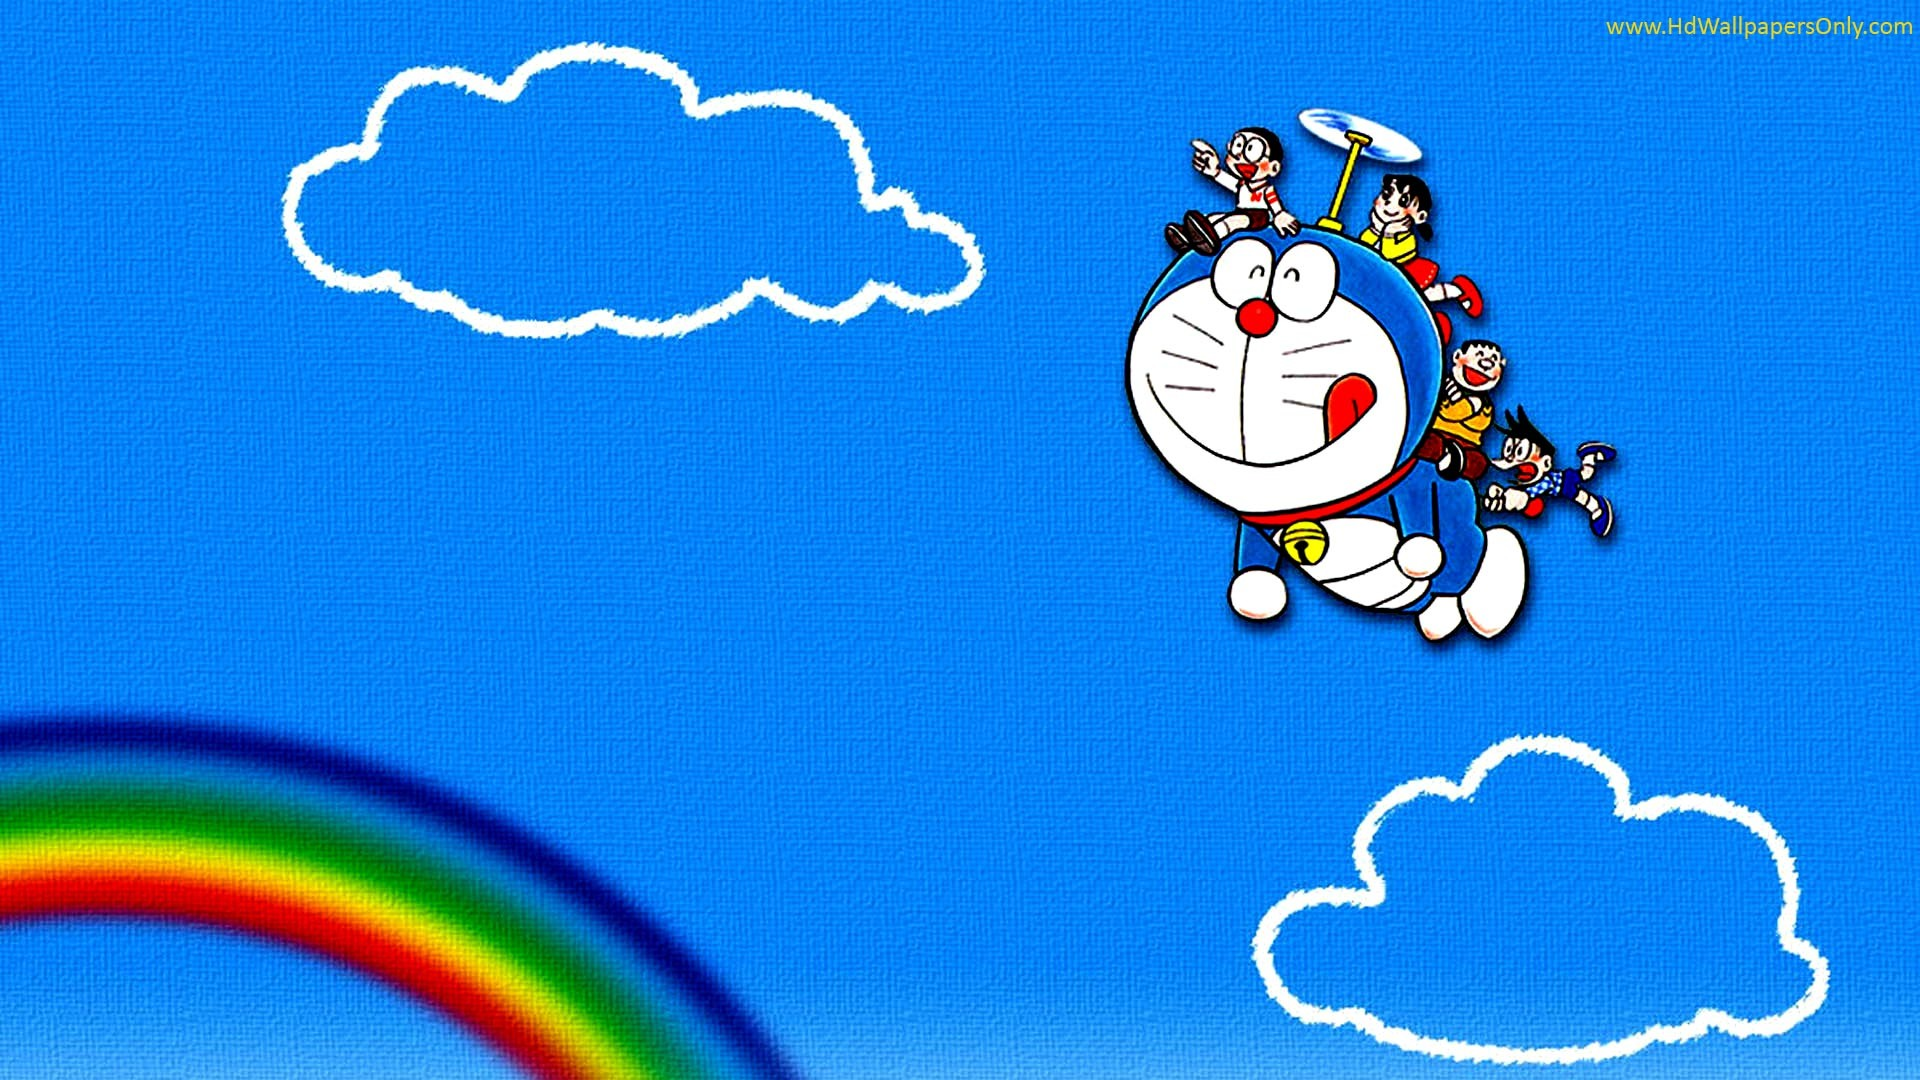 Doraemon And Friends Wallpaper 2018 78 Pictures